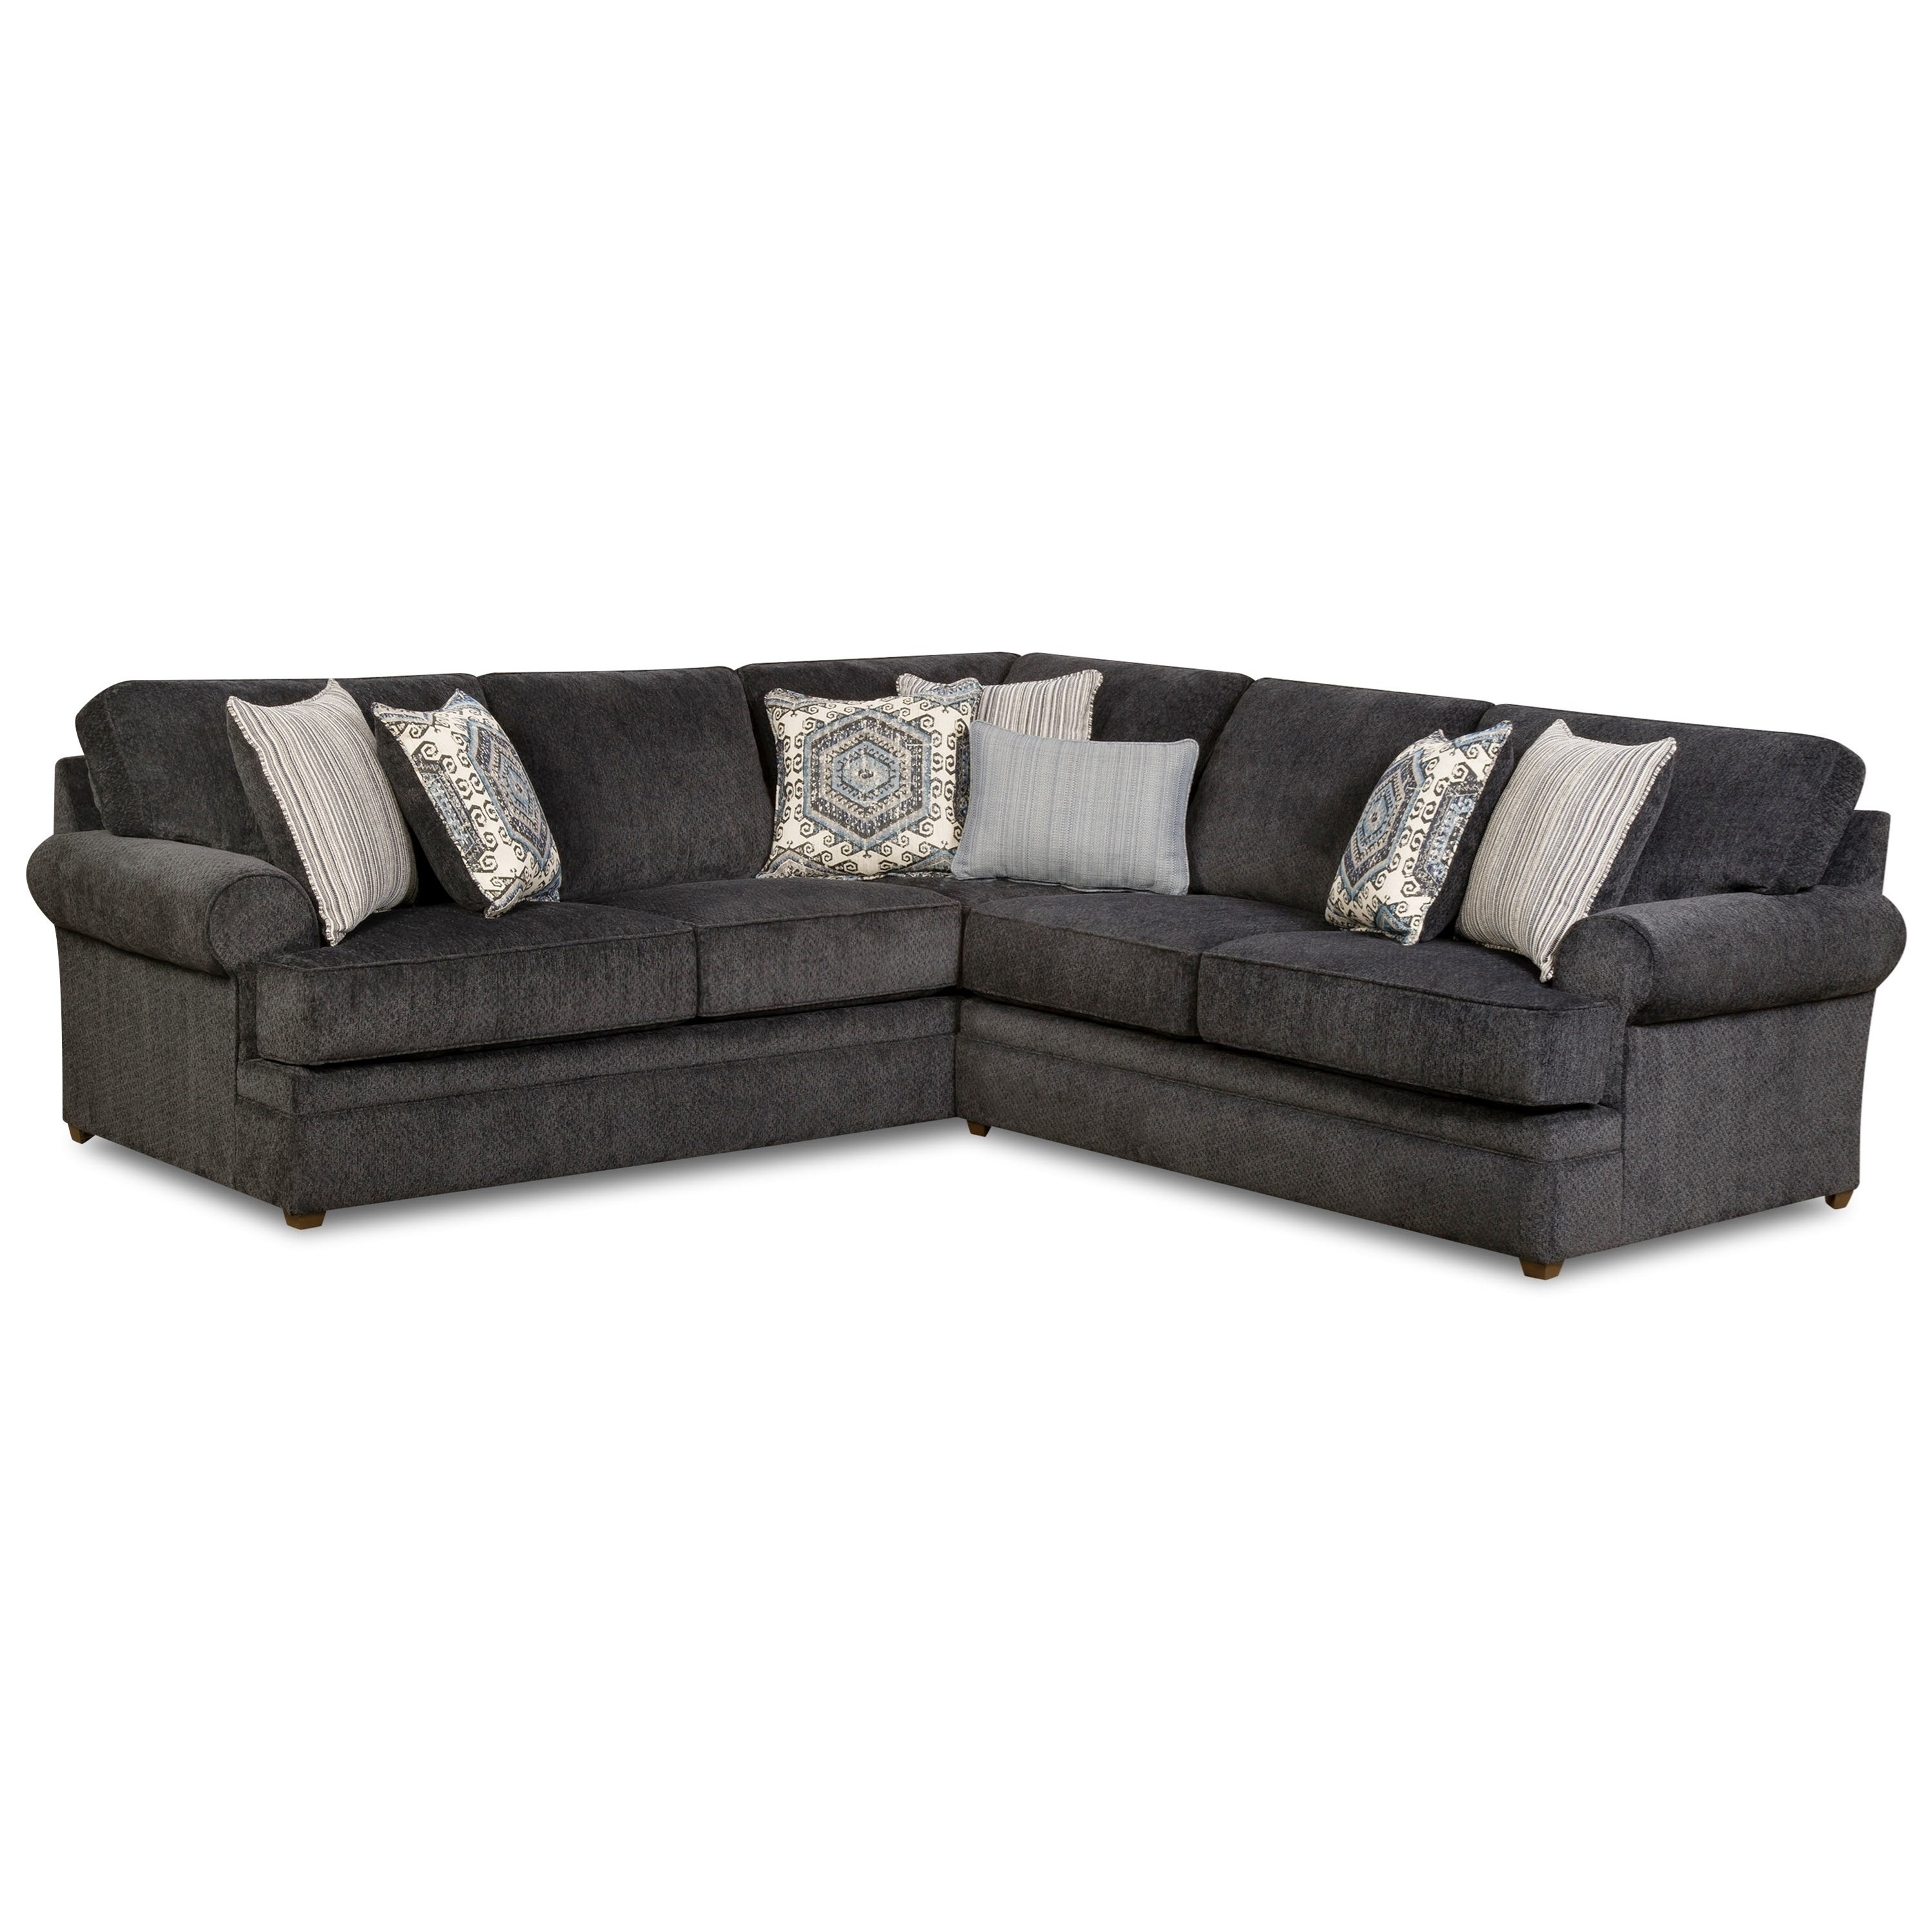 Simmons Upholstery 8530 Br Transitional Sectional Sofa With Rolled Pertaining To Sectional Sofas At Birmingham Al (View 15 of 15)